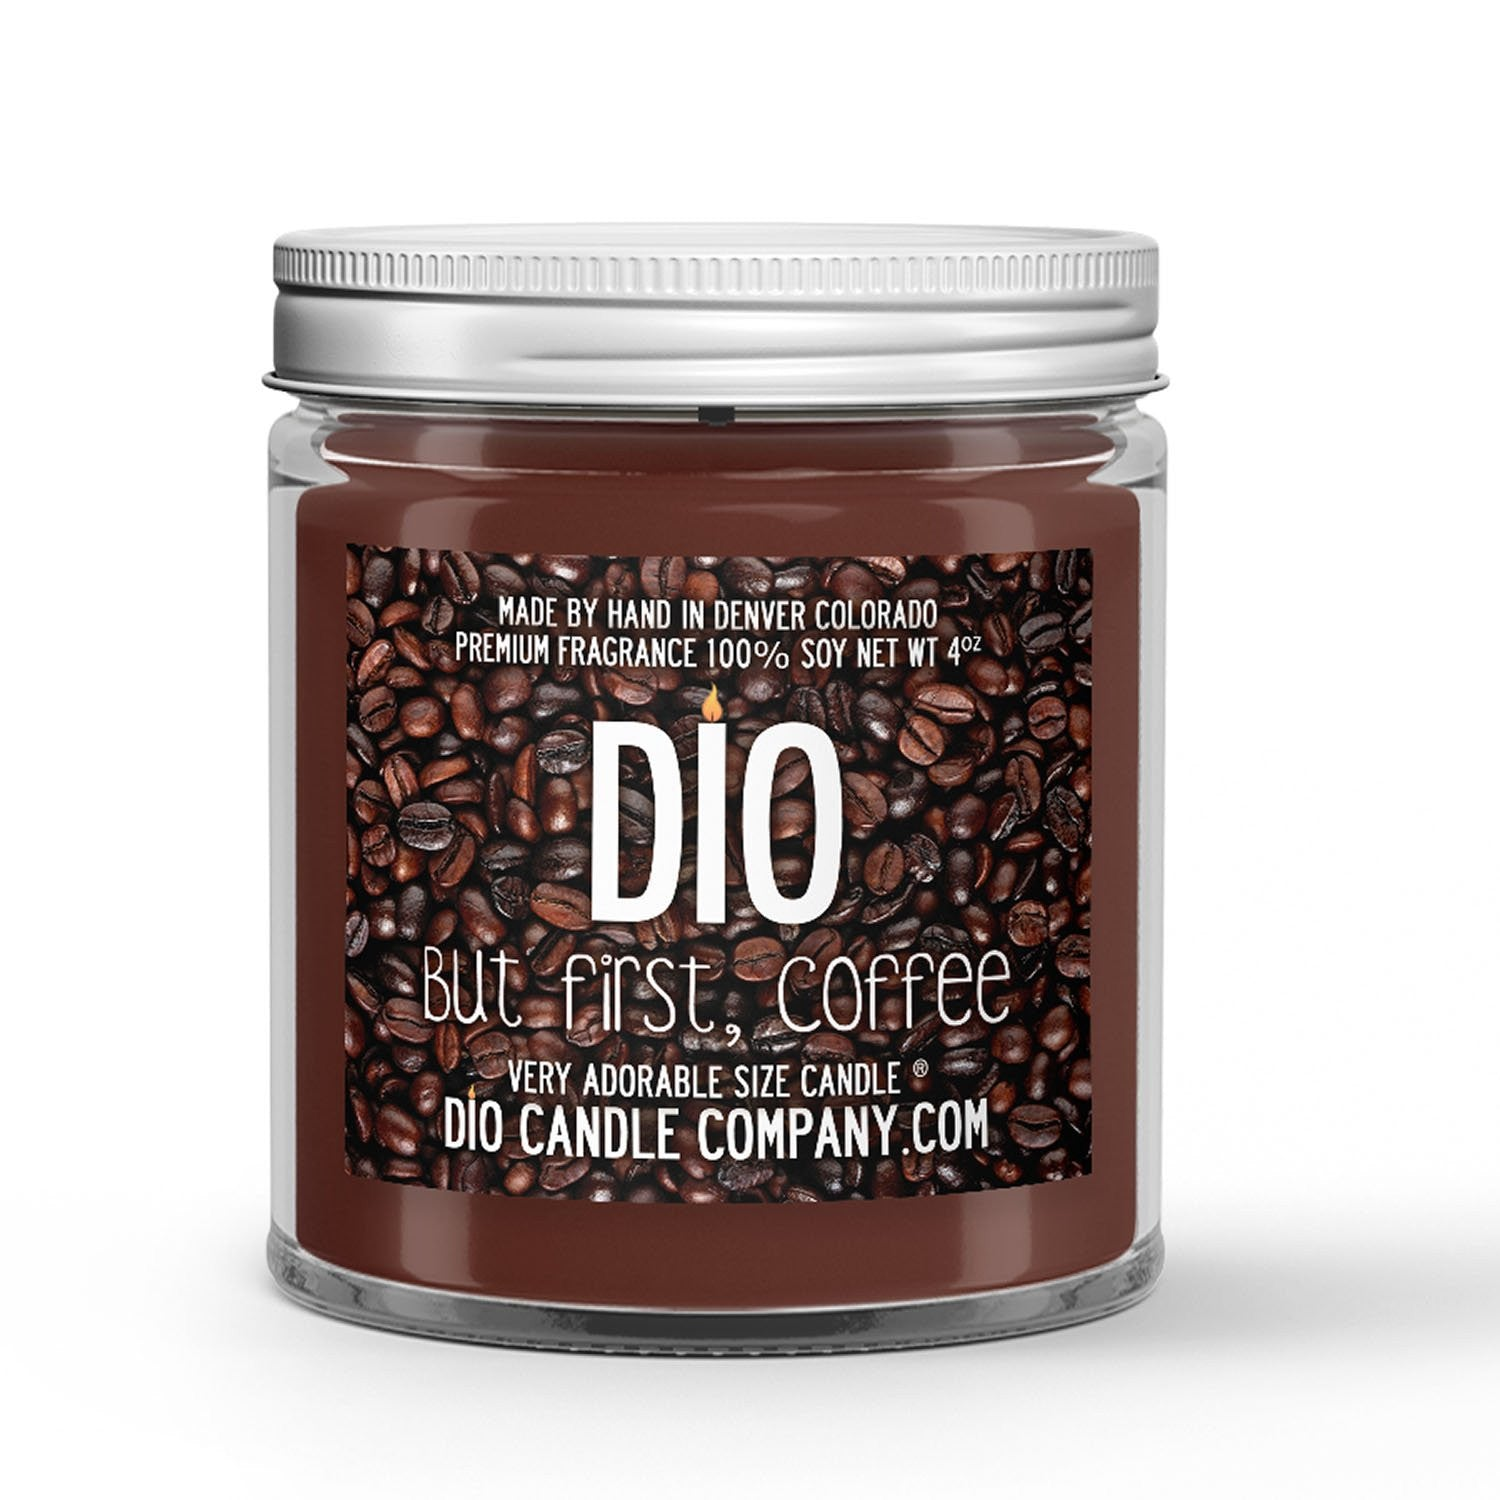 But First Coffee Candle - Ground Coffee Bean - Vanilla - 4oz Very Adorable Size Candle® - Dio Candle Company